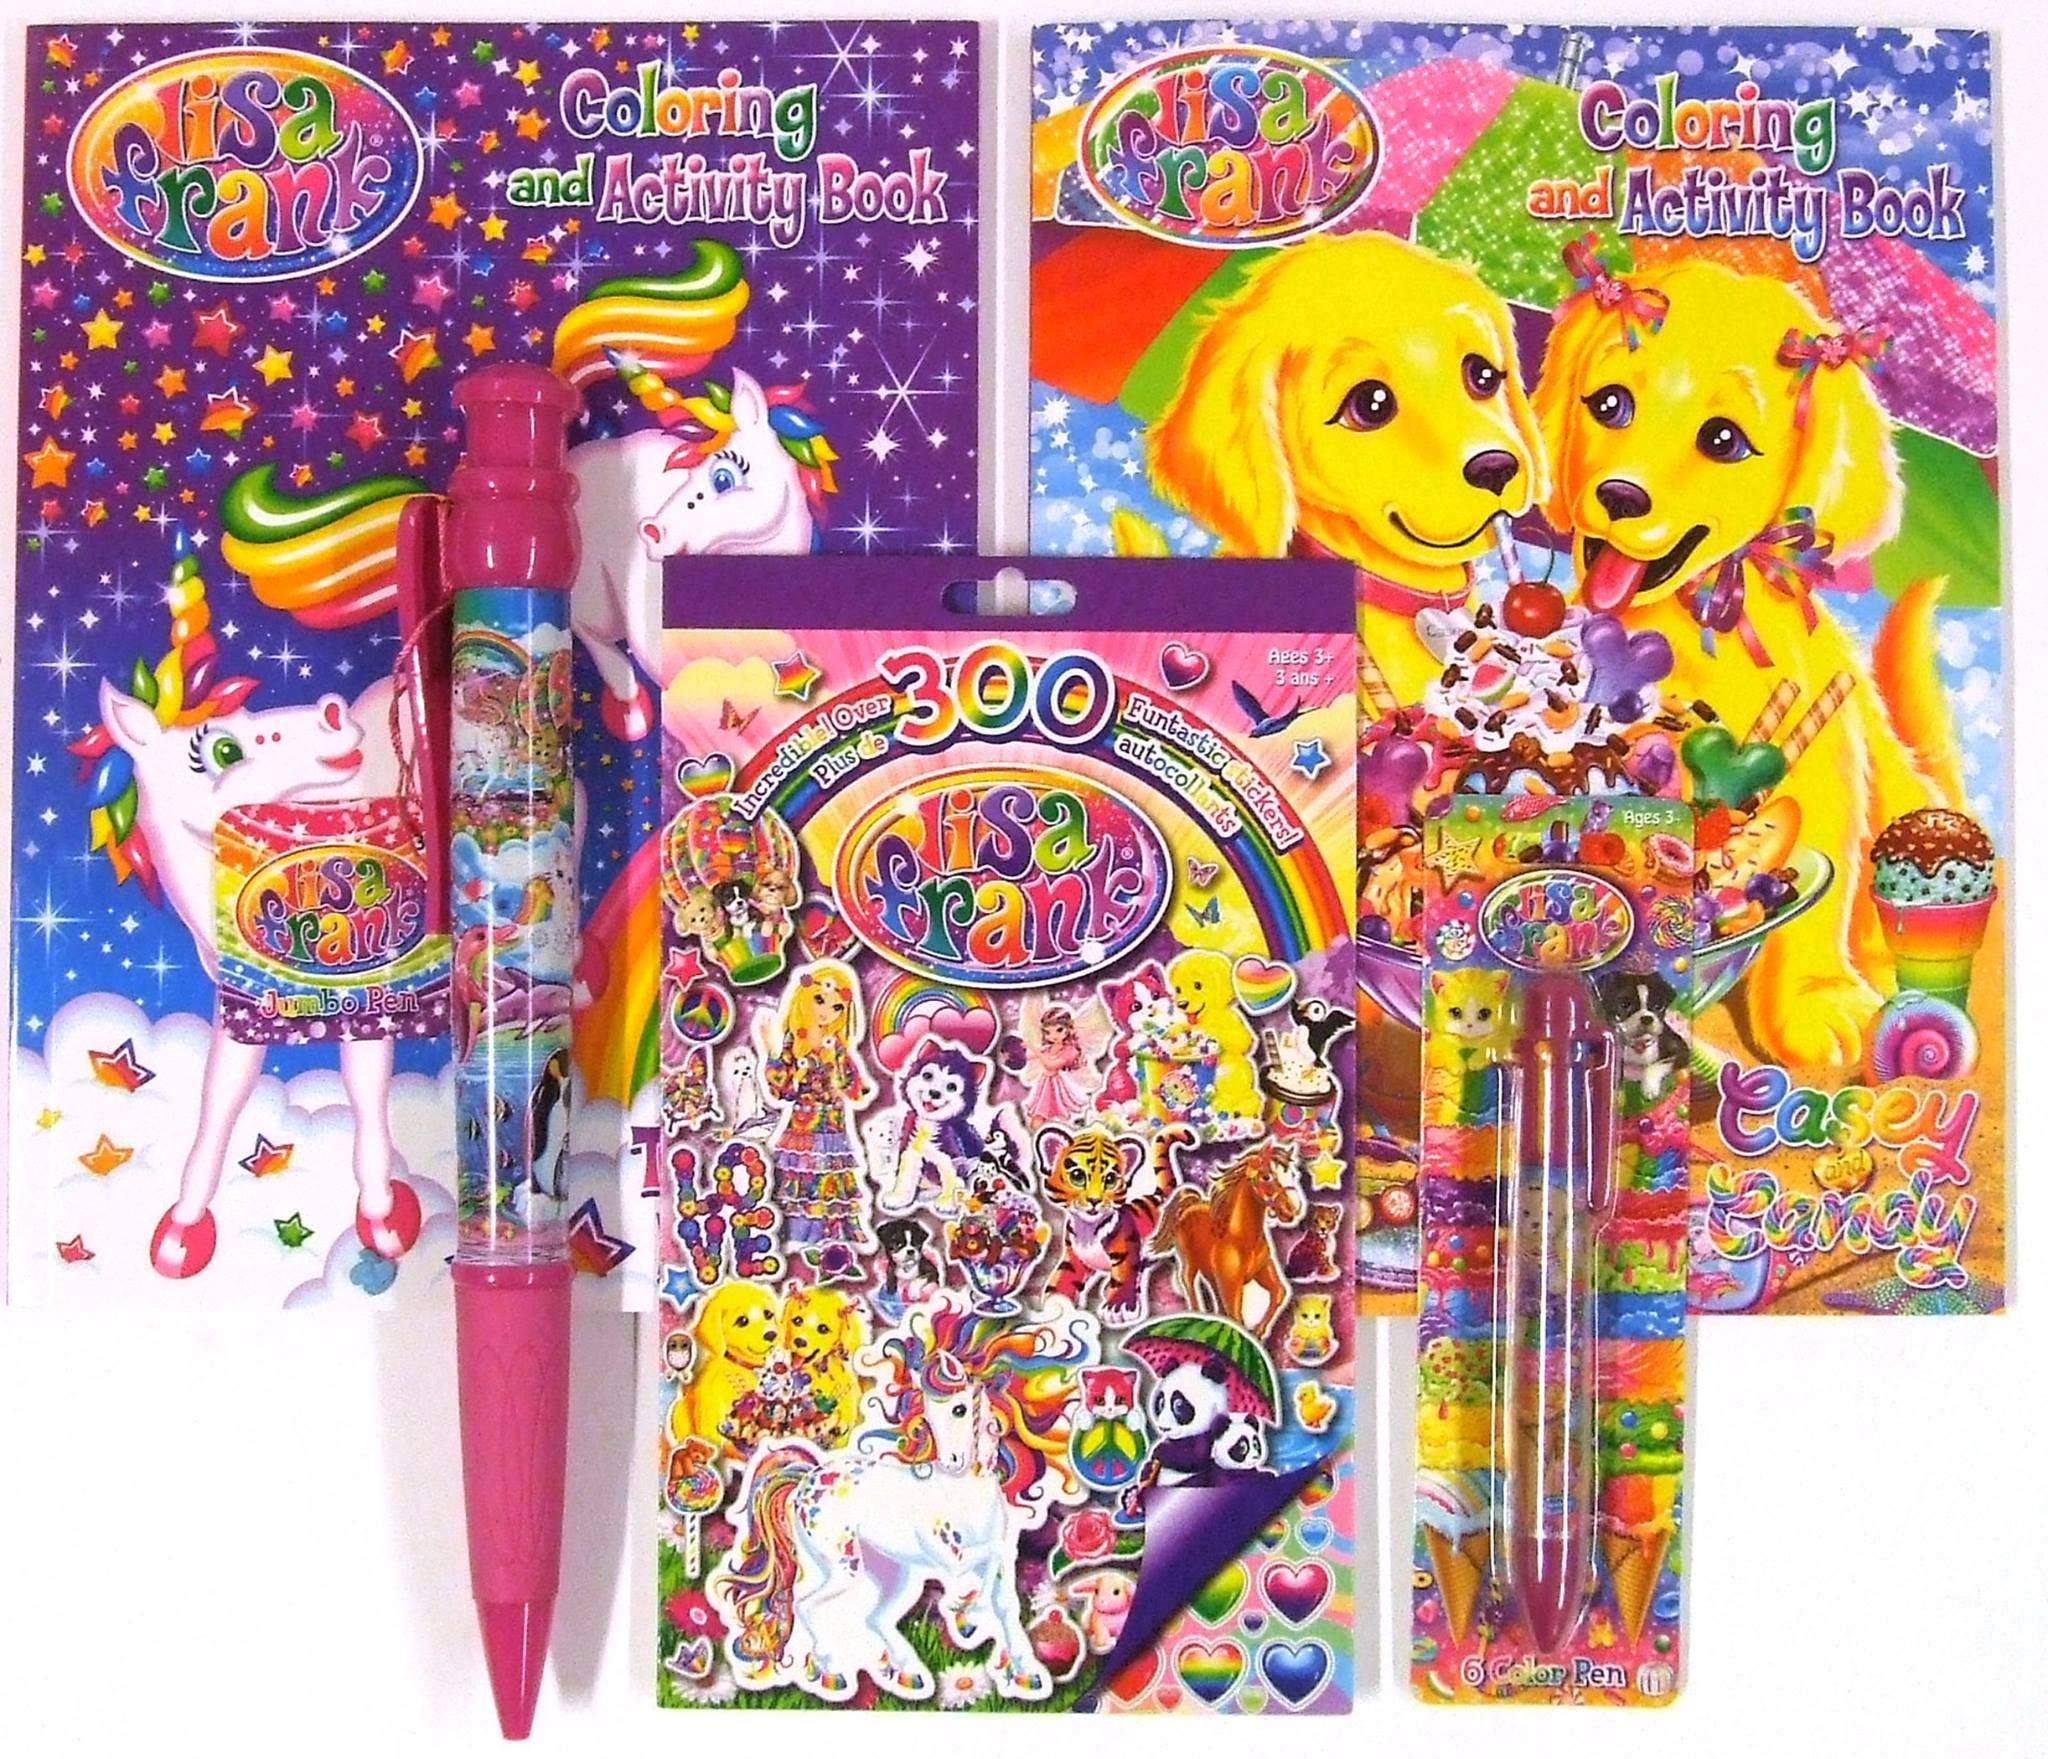 hurry available now at target one spot lisa frank products